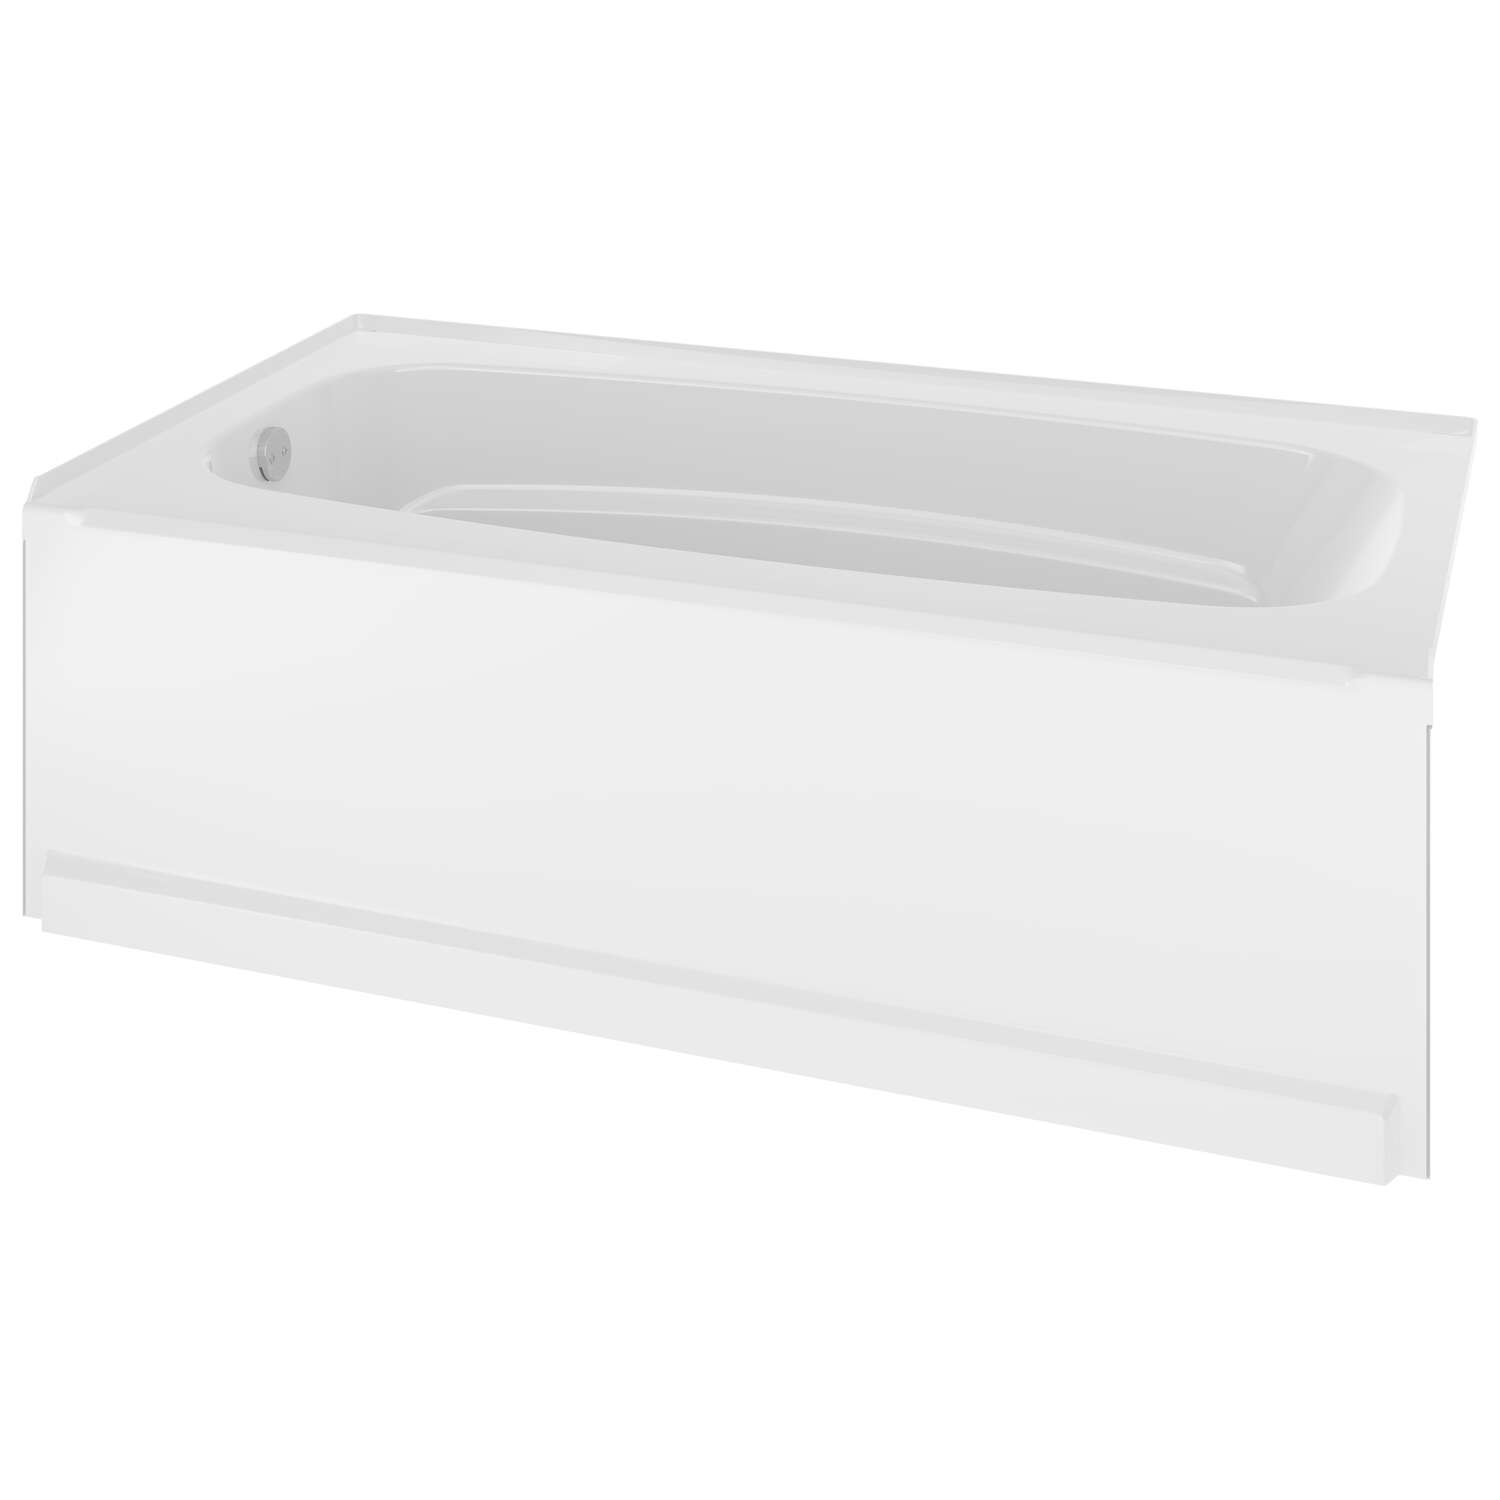 Delta Bathing System Classic 18 in. H x 60 in. W x 32-1/2 in. L White Bathtub